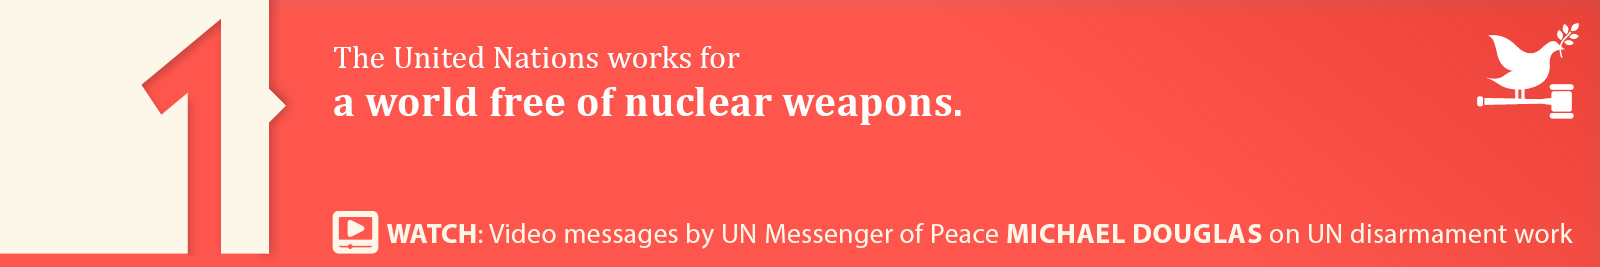 1.	A world free of nuclear weapons.